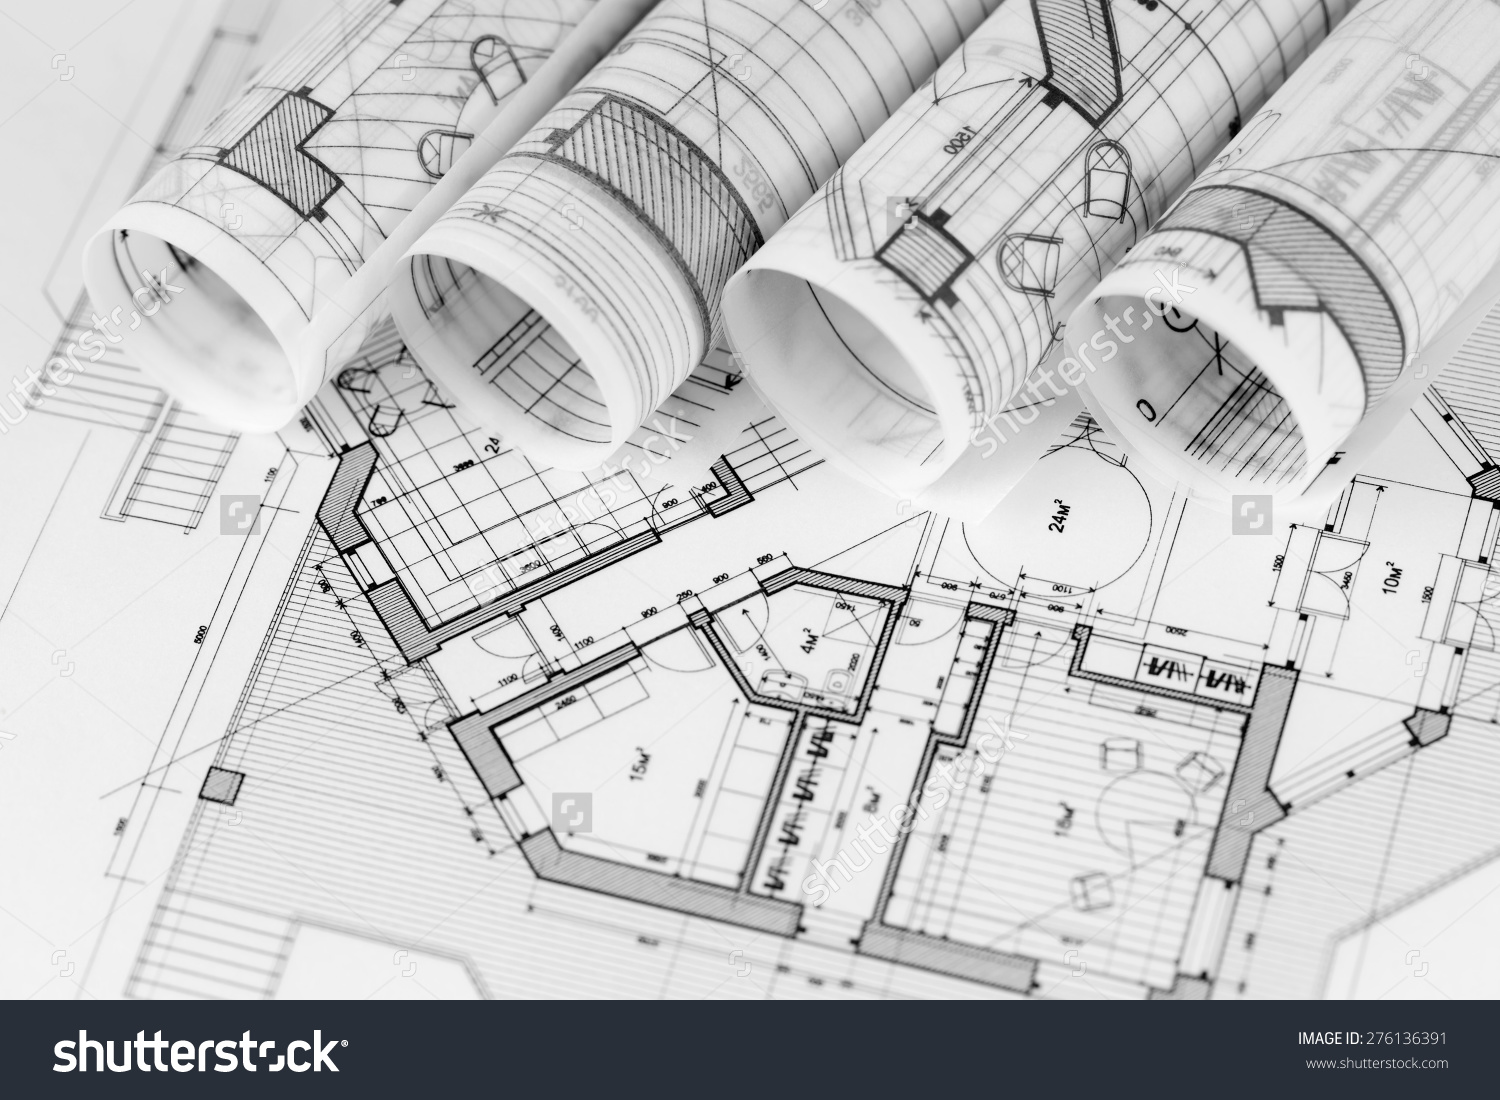 Creative solutions xanadu builders architects engineers and subcontractor team reach out for simple solutions permit advice andor let us help value engineer your next project malvernweather Images